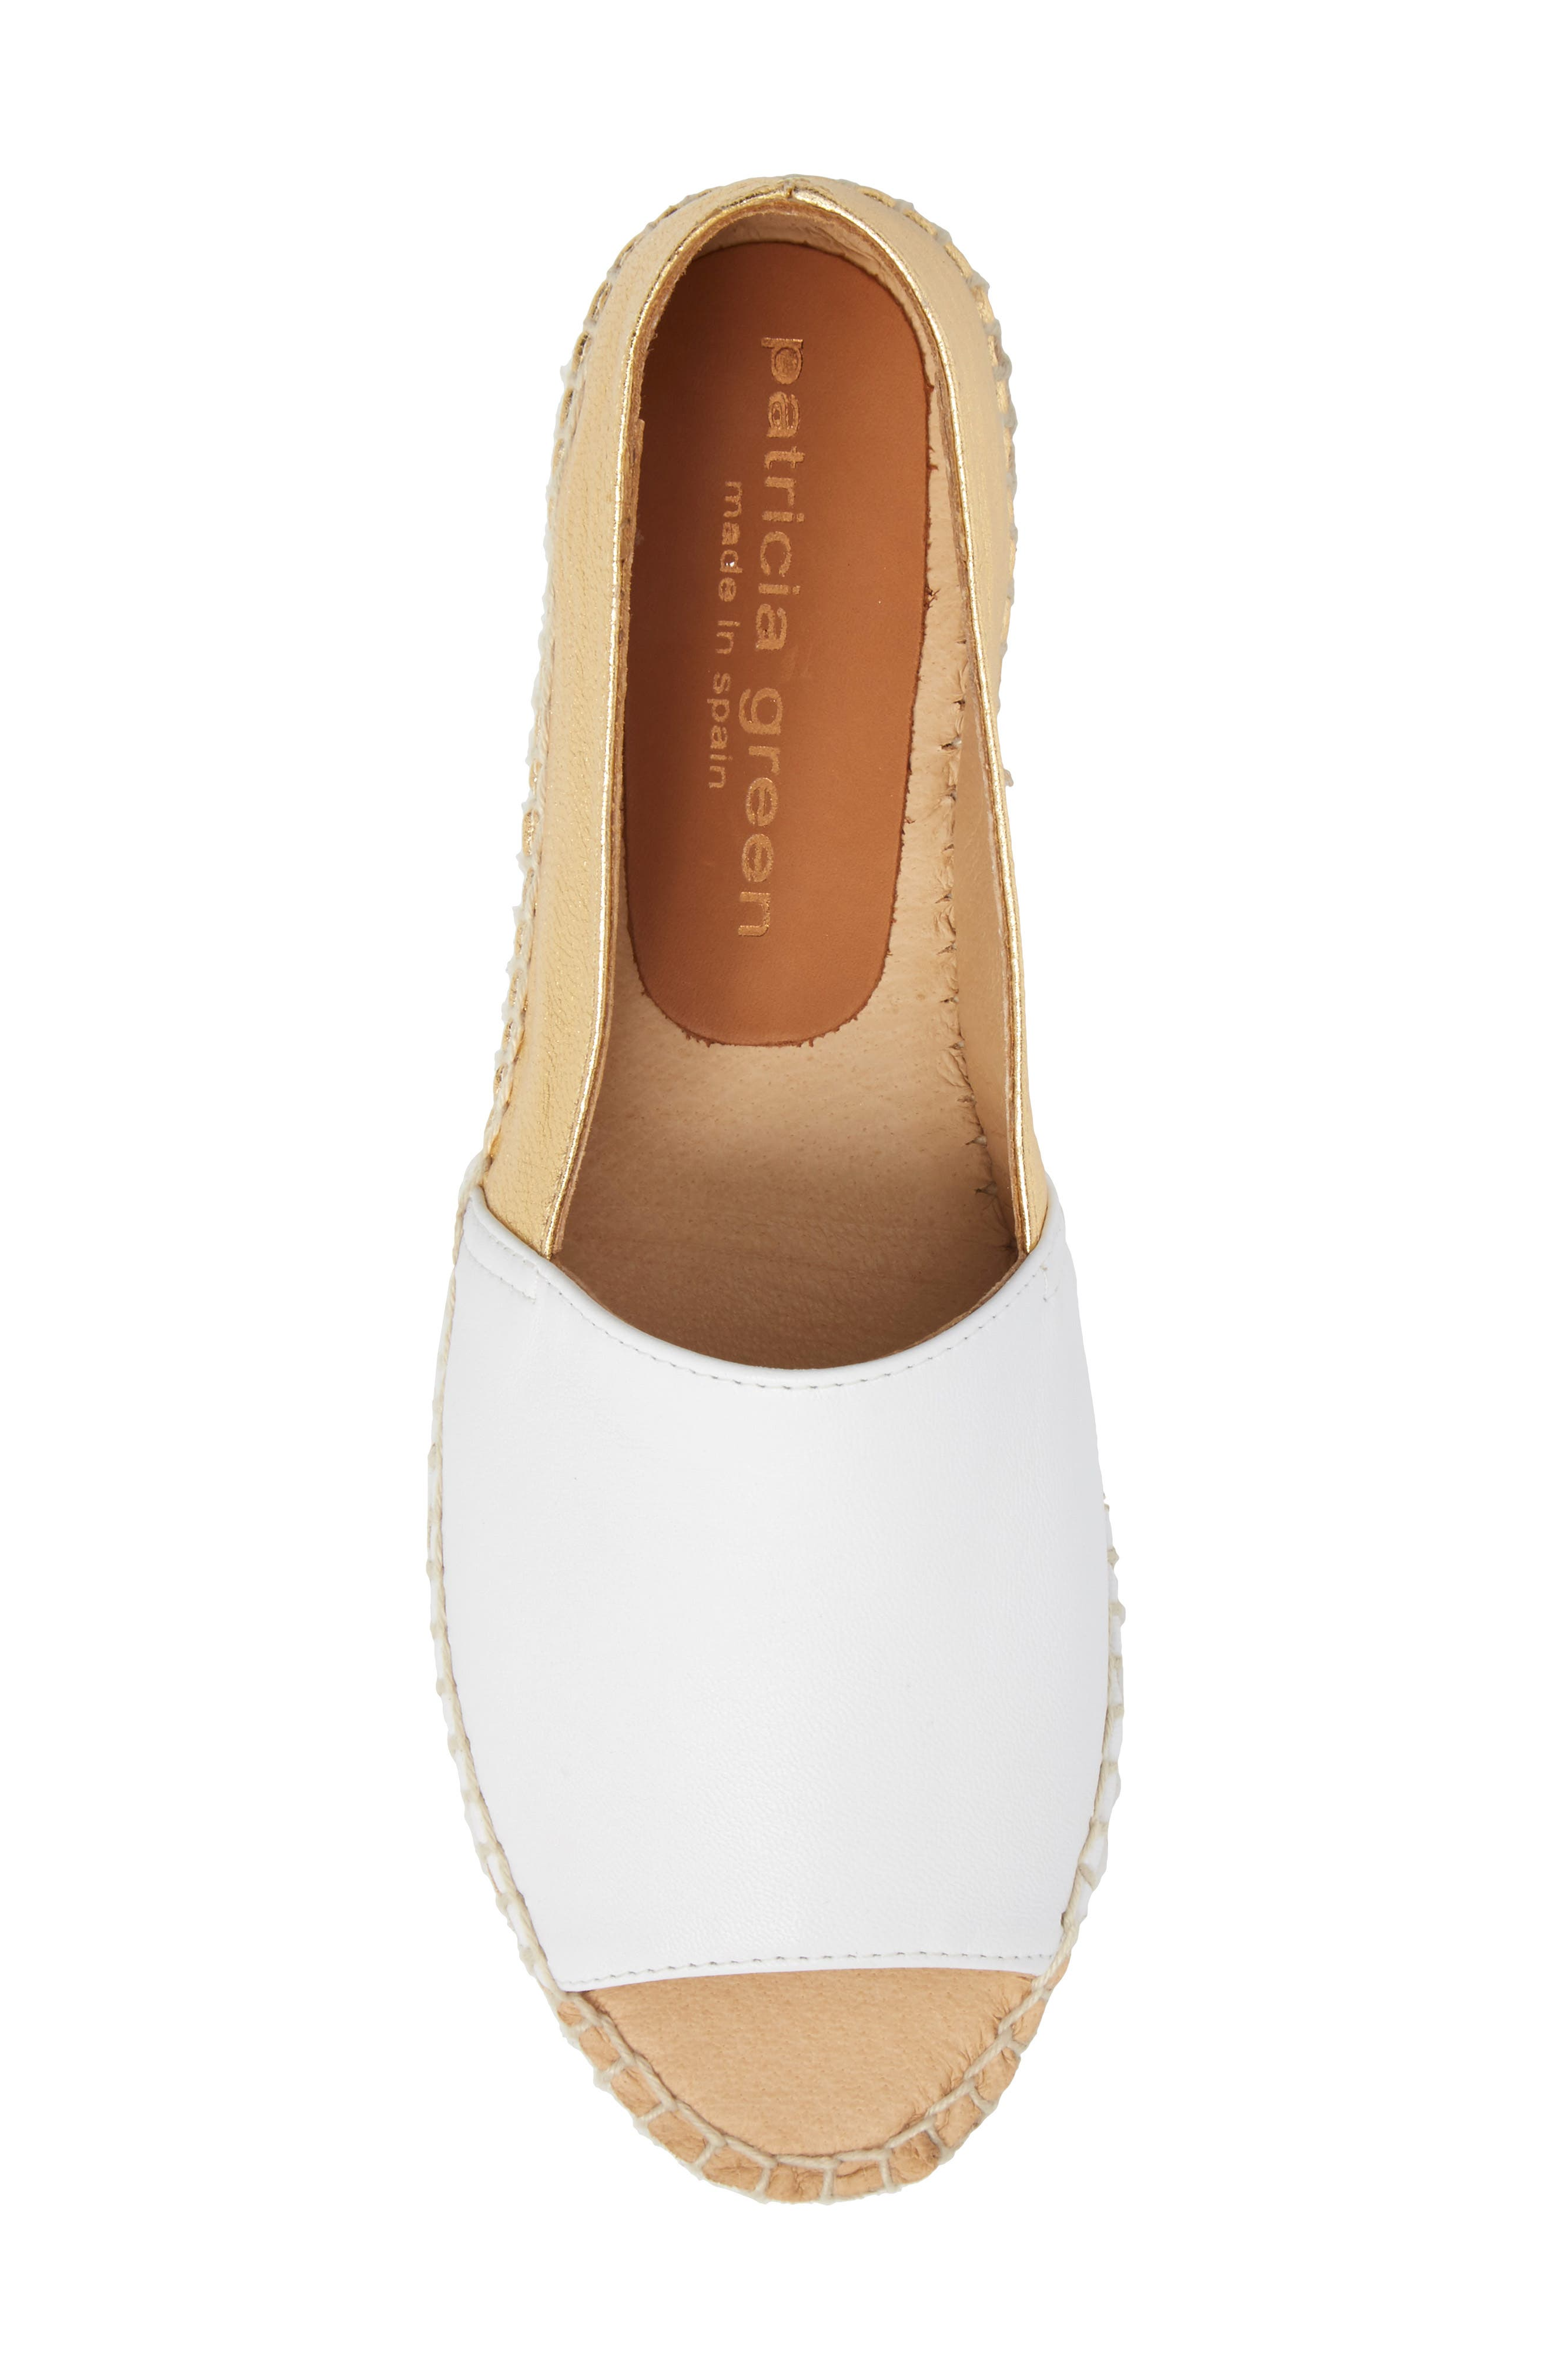 Milly Espadrille,                             Alternate thumbnail 5, color,                             Gold Leather